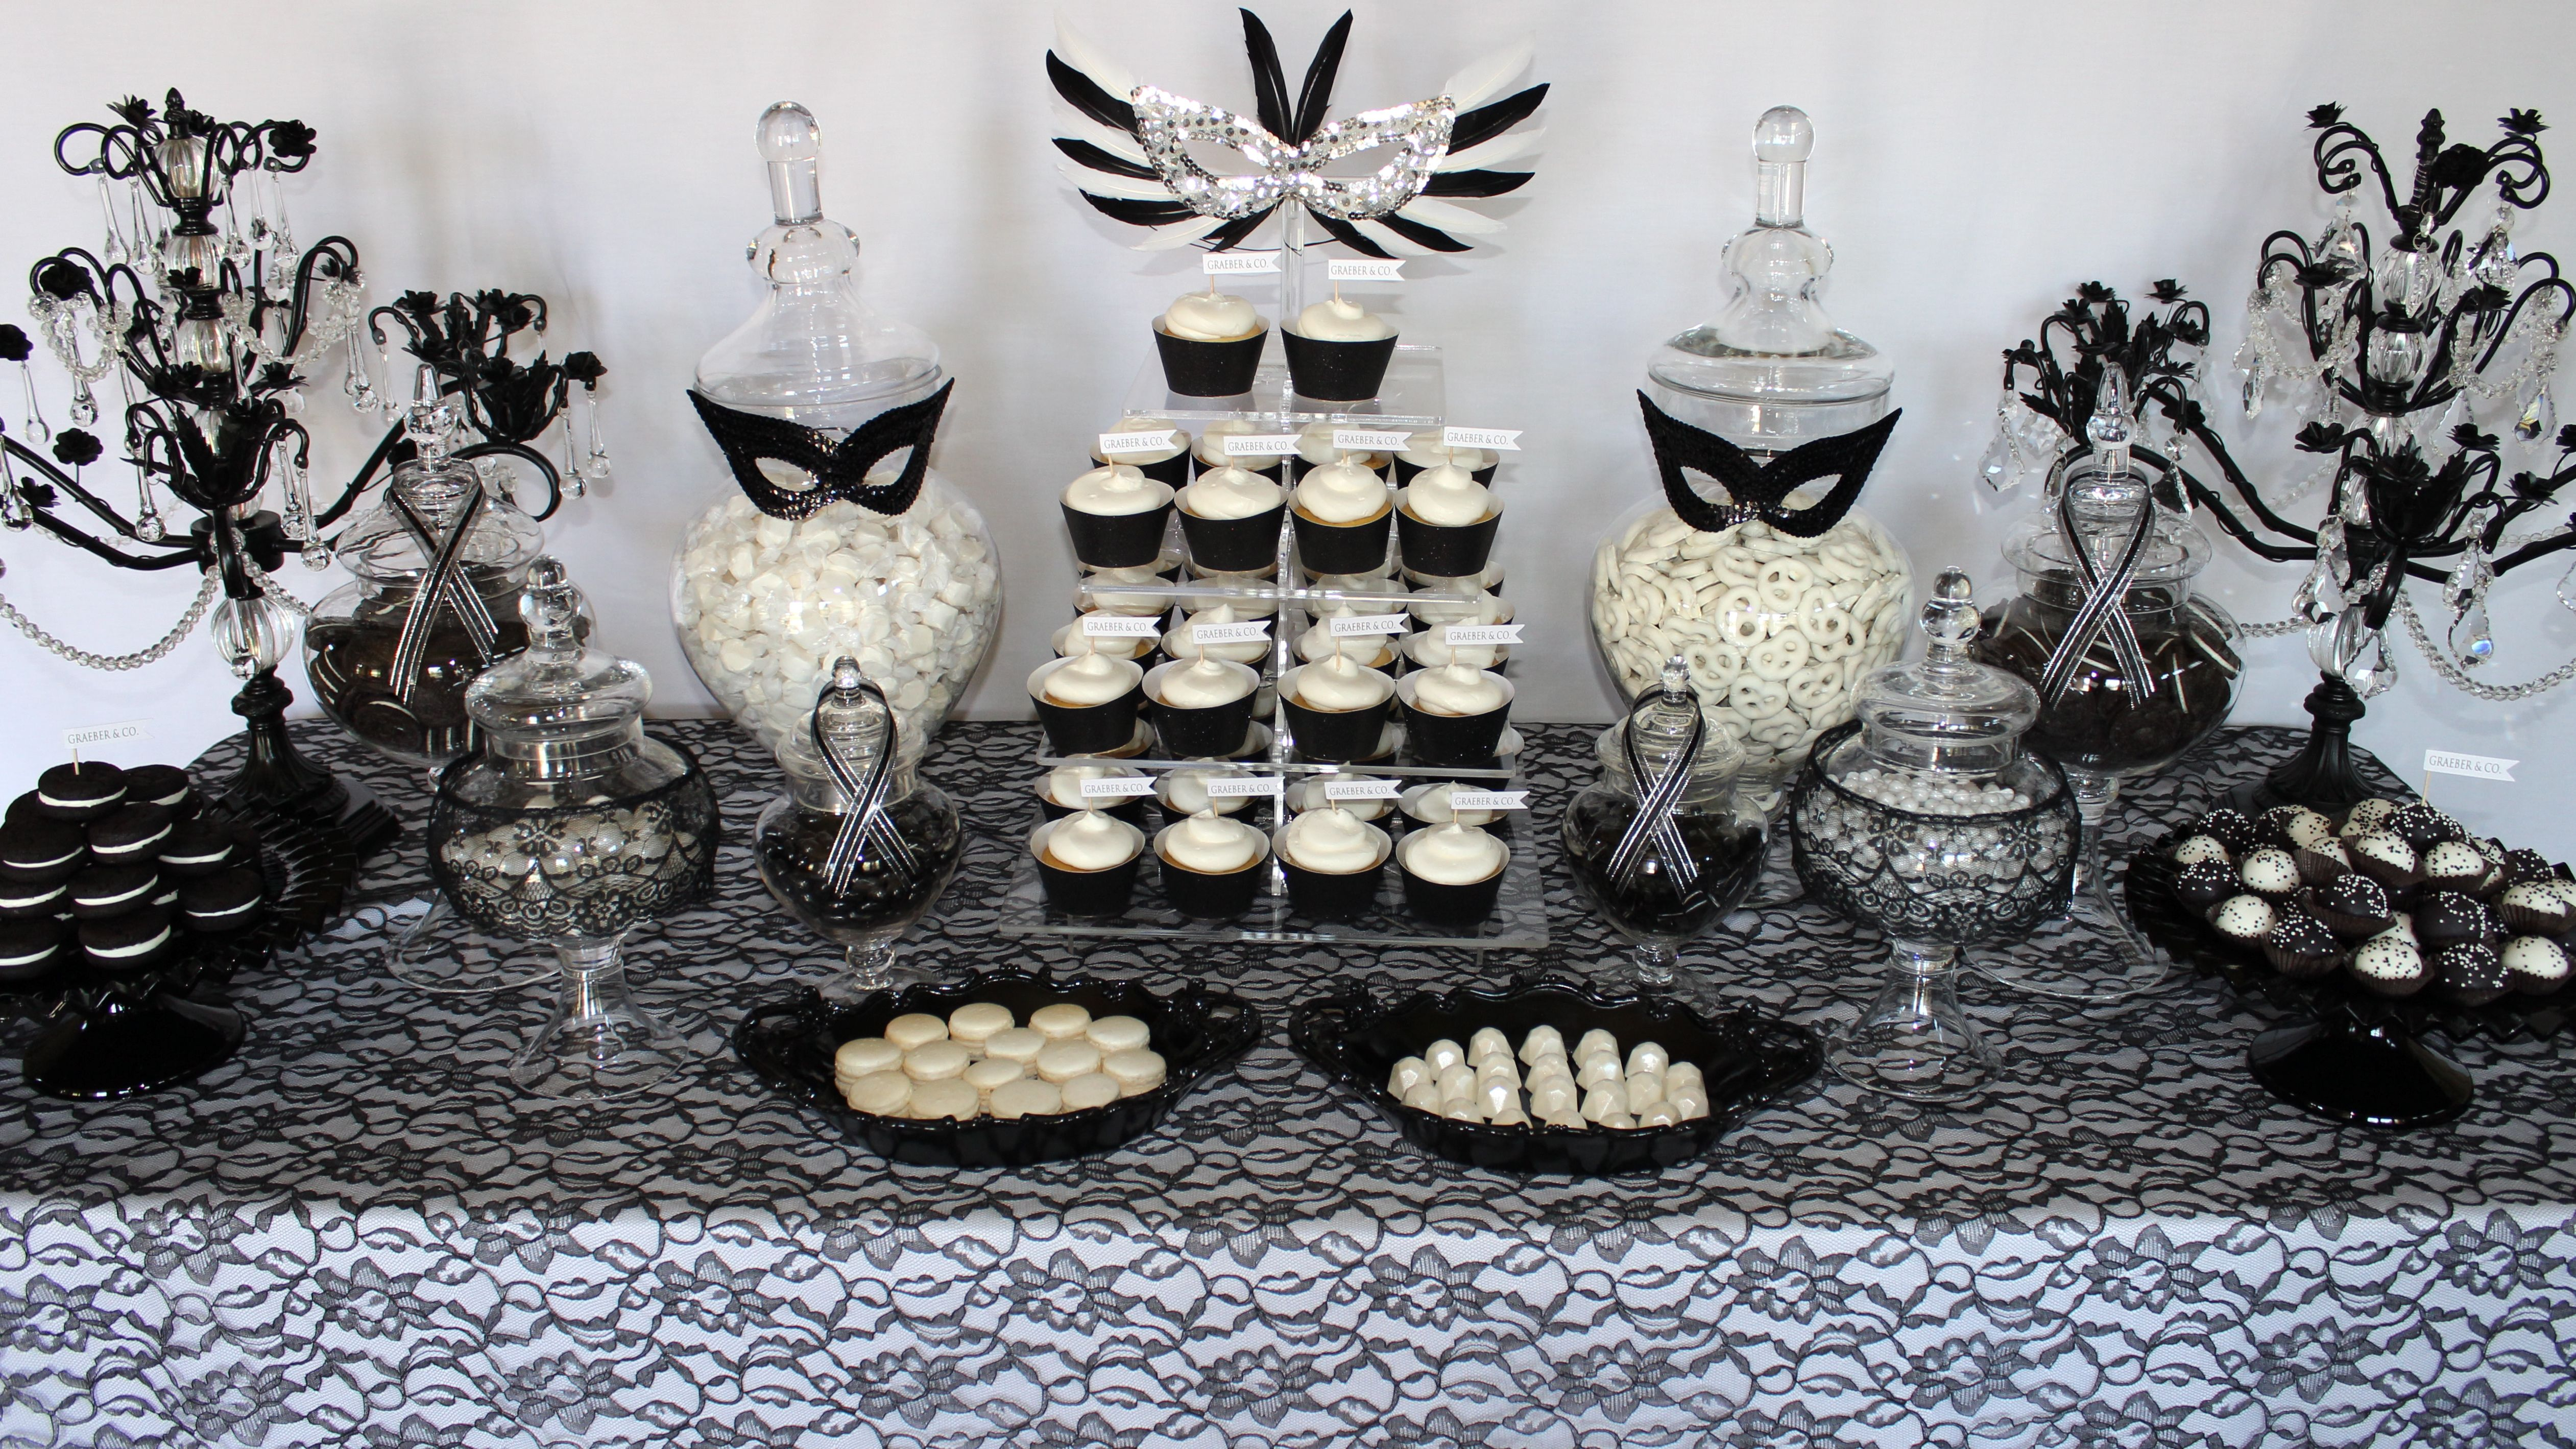 Masquerade Dessert Display by Eye Candy Event Design | We Like To ...